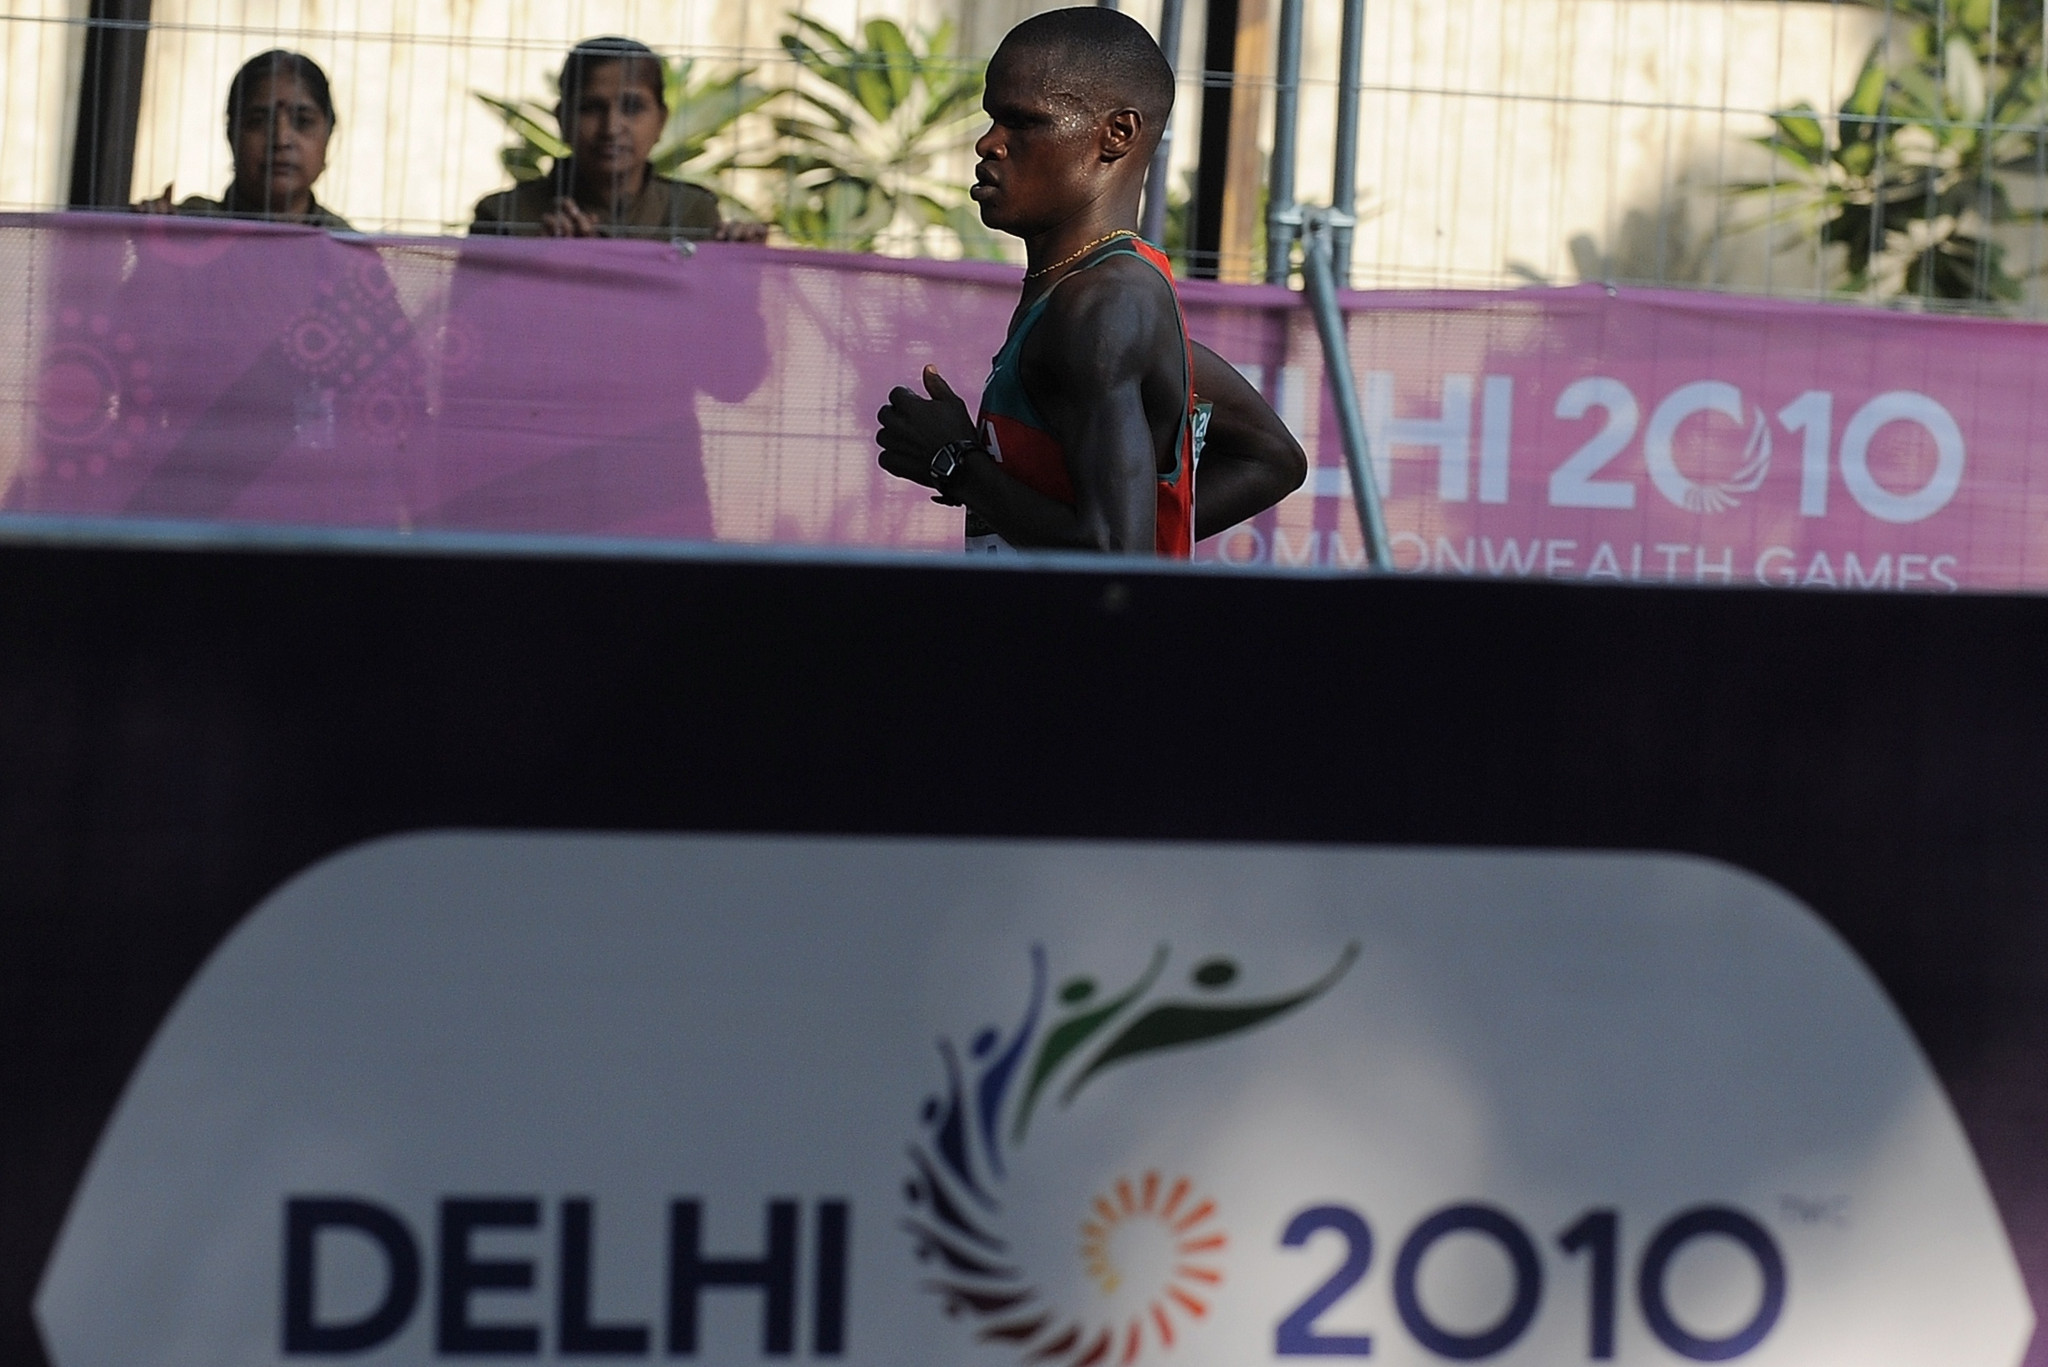 John Kelai was the last Kenyan man to win the Commonwealth Games marathon at Delhi 2010 ©Getty Images